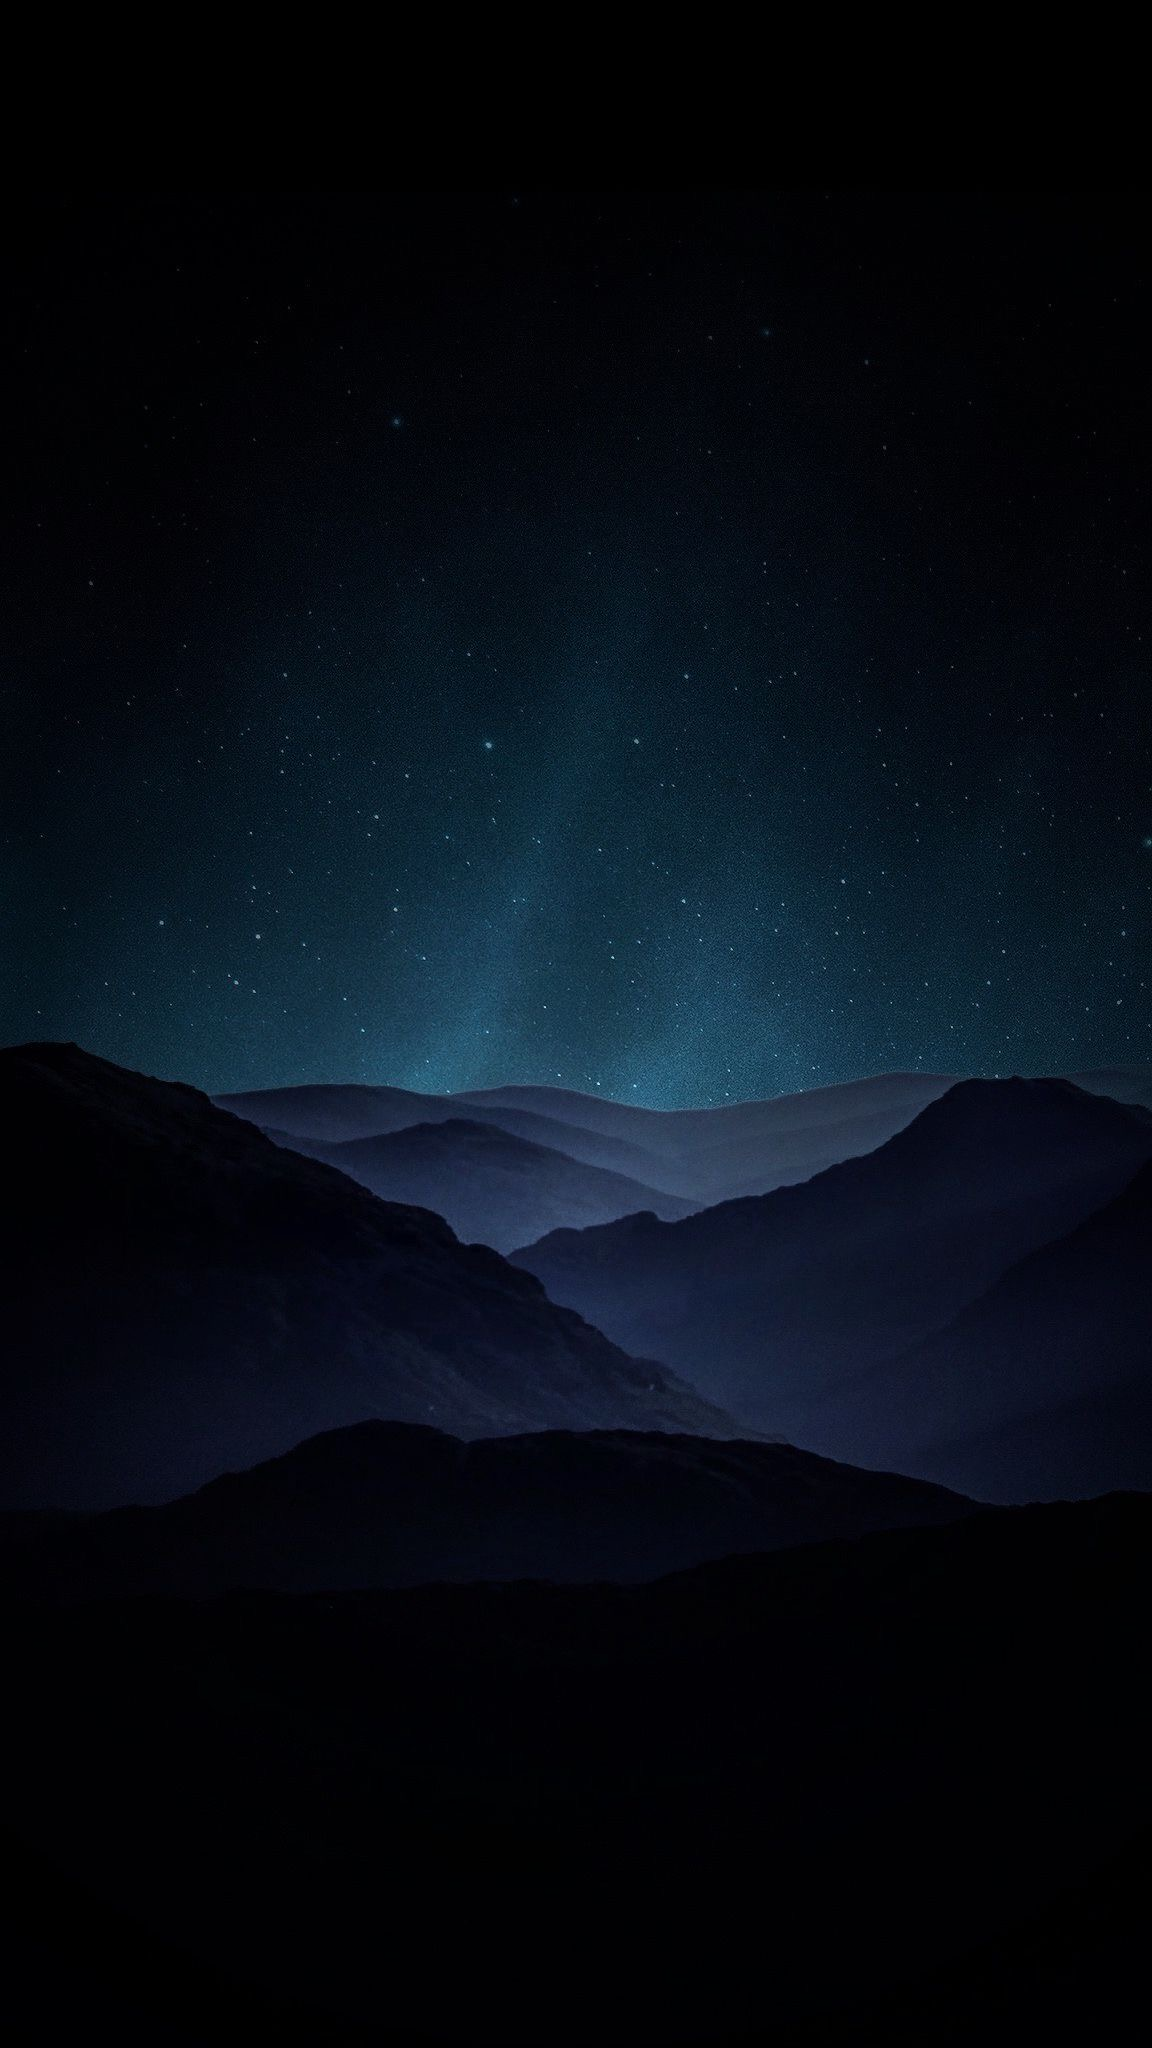 MOUNTAIN NIGHT MOUNTAINS LANDSCAPE STARS SKY